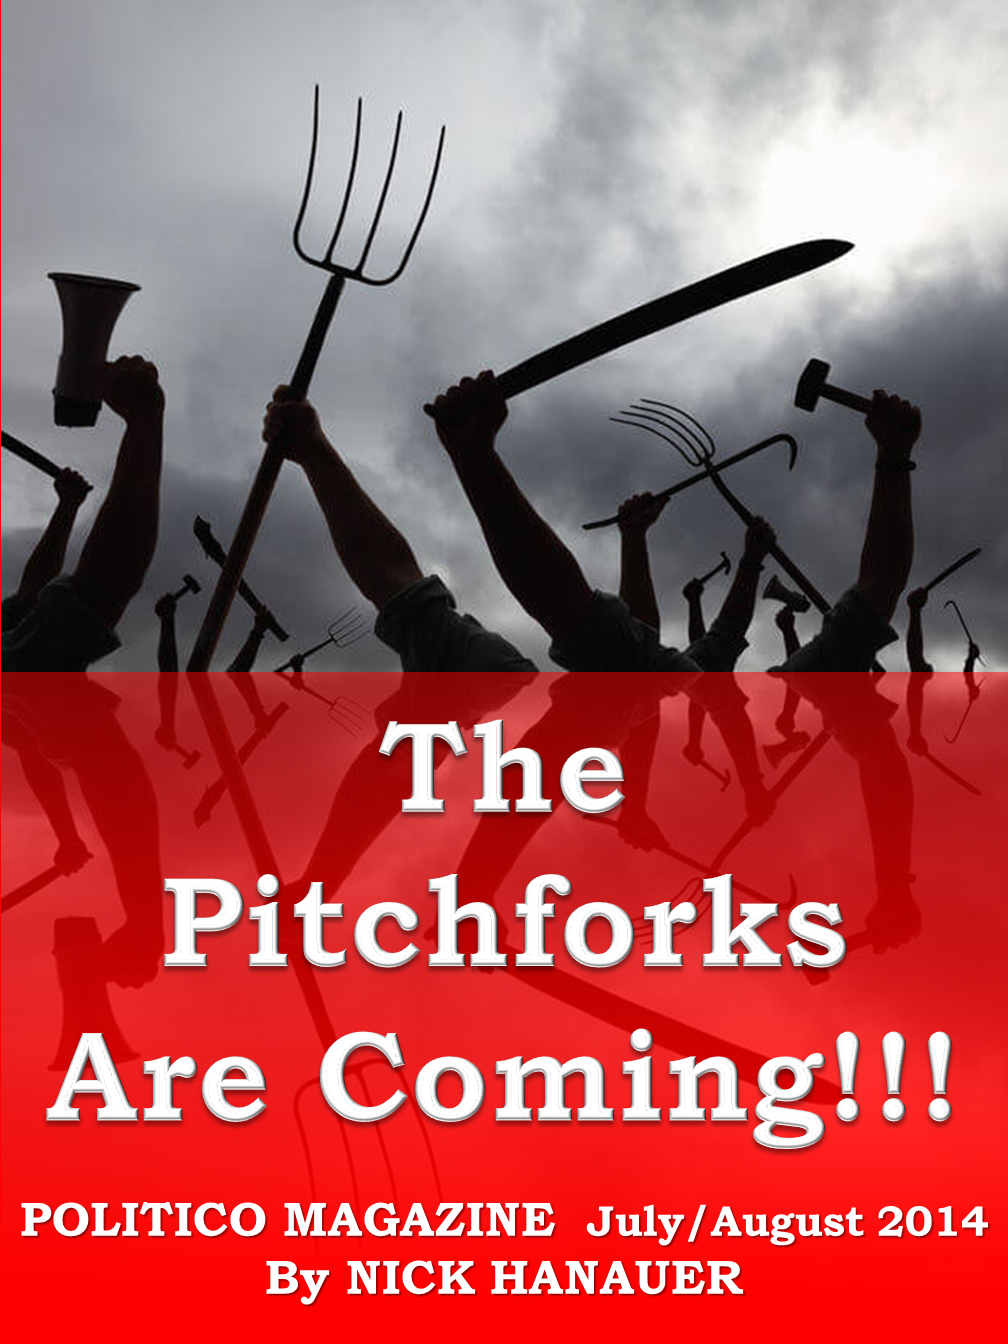 The Pitchforks are Coming